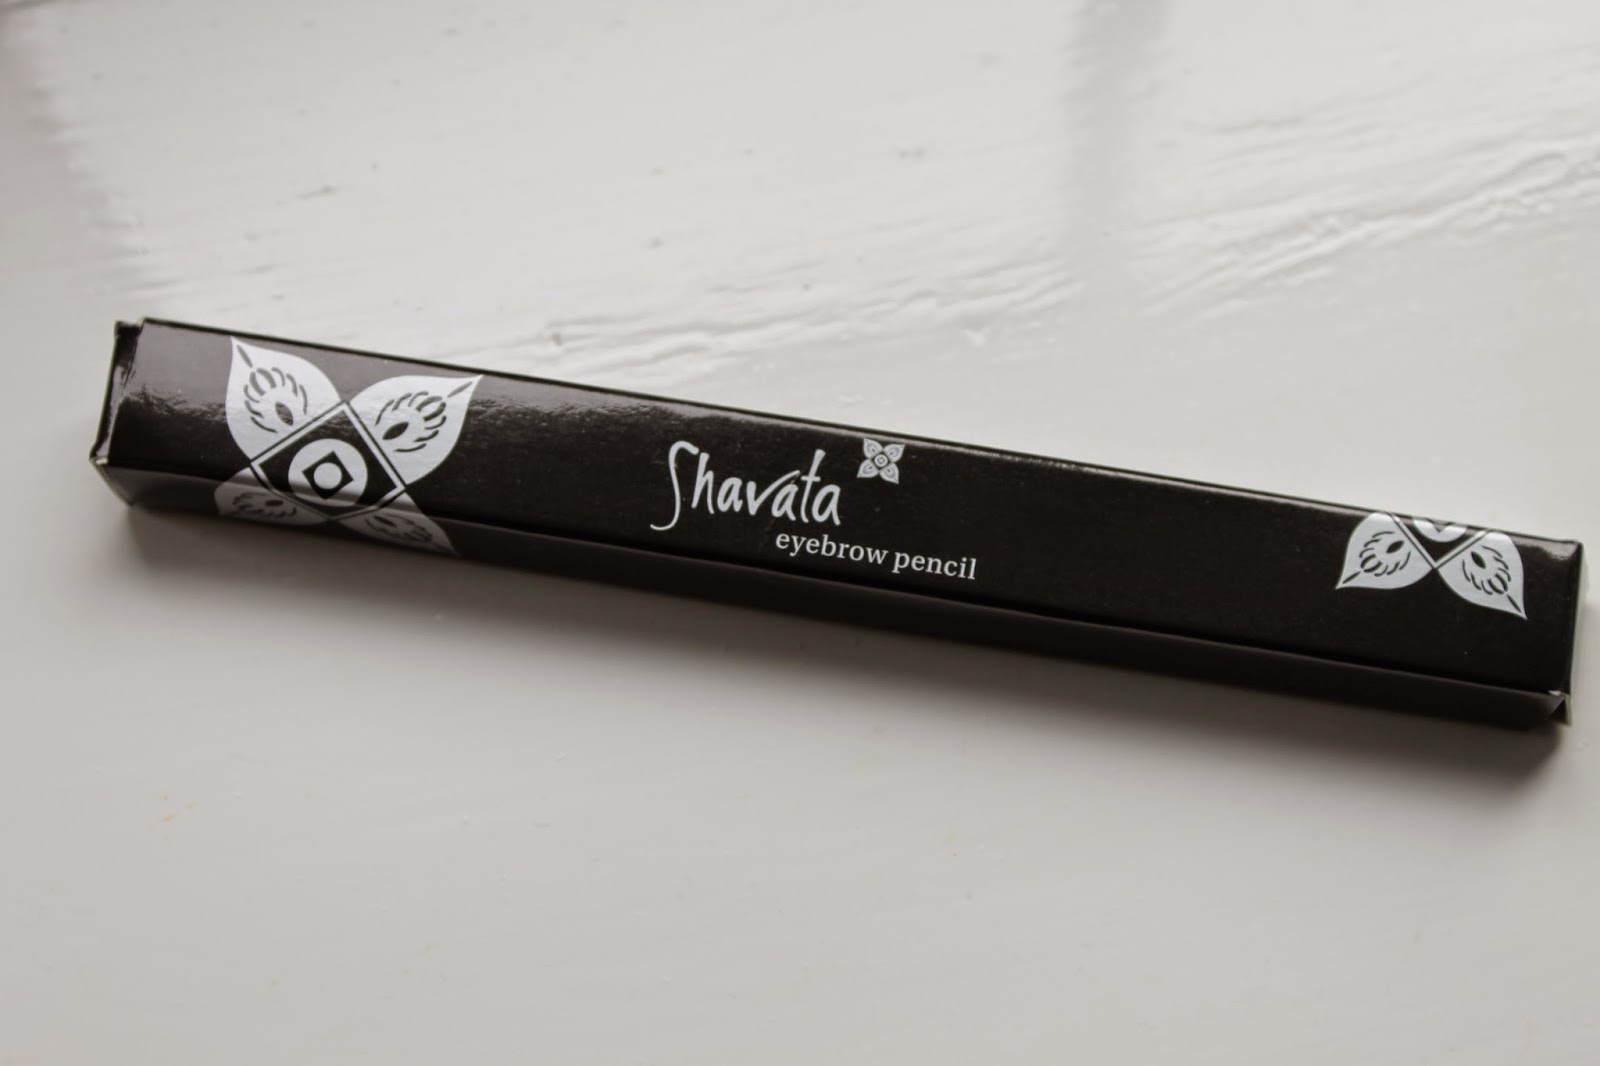 Shavata Double-Ended Eyebrow Pencil